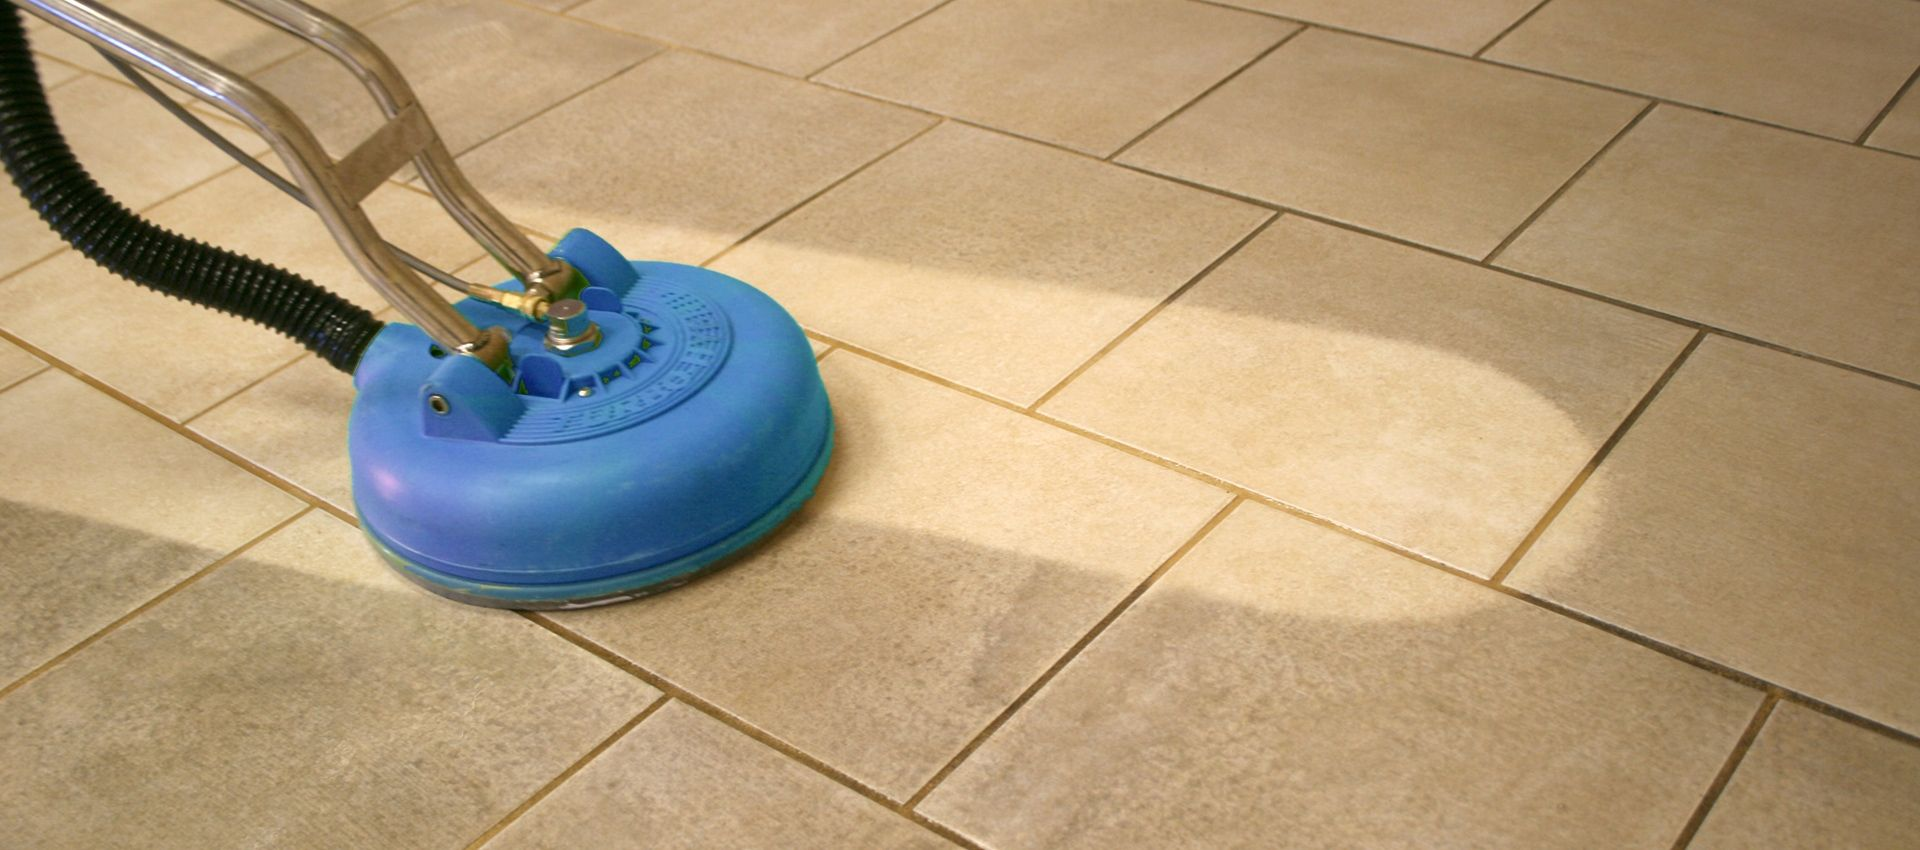 Best To Mop Tile Floors With Innovations And Progress In Home Design Addition Expanding Imagination Fashion Til